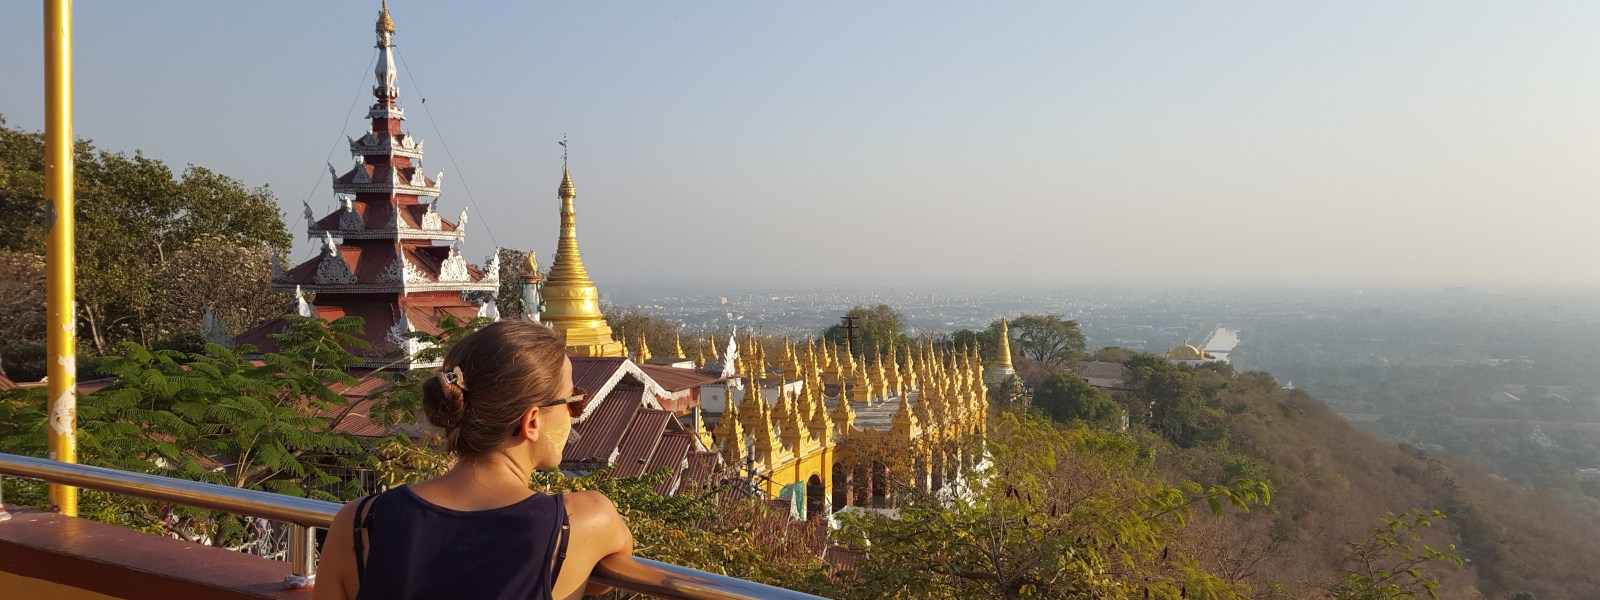 Things to know before travelling to Myanmar